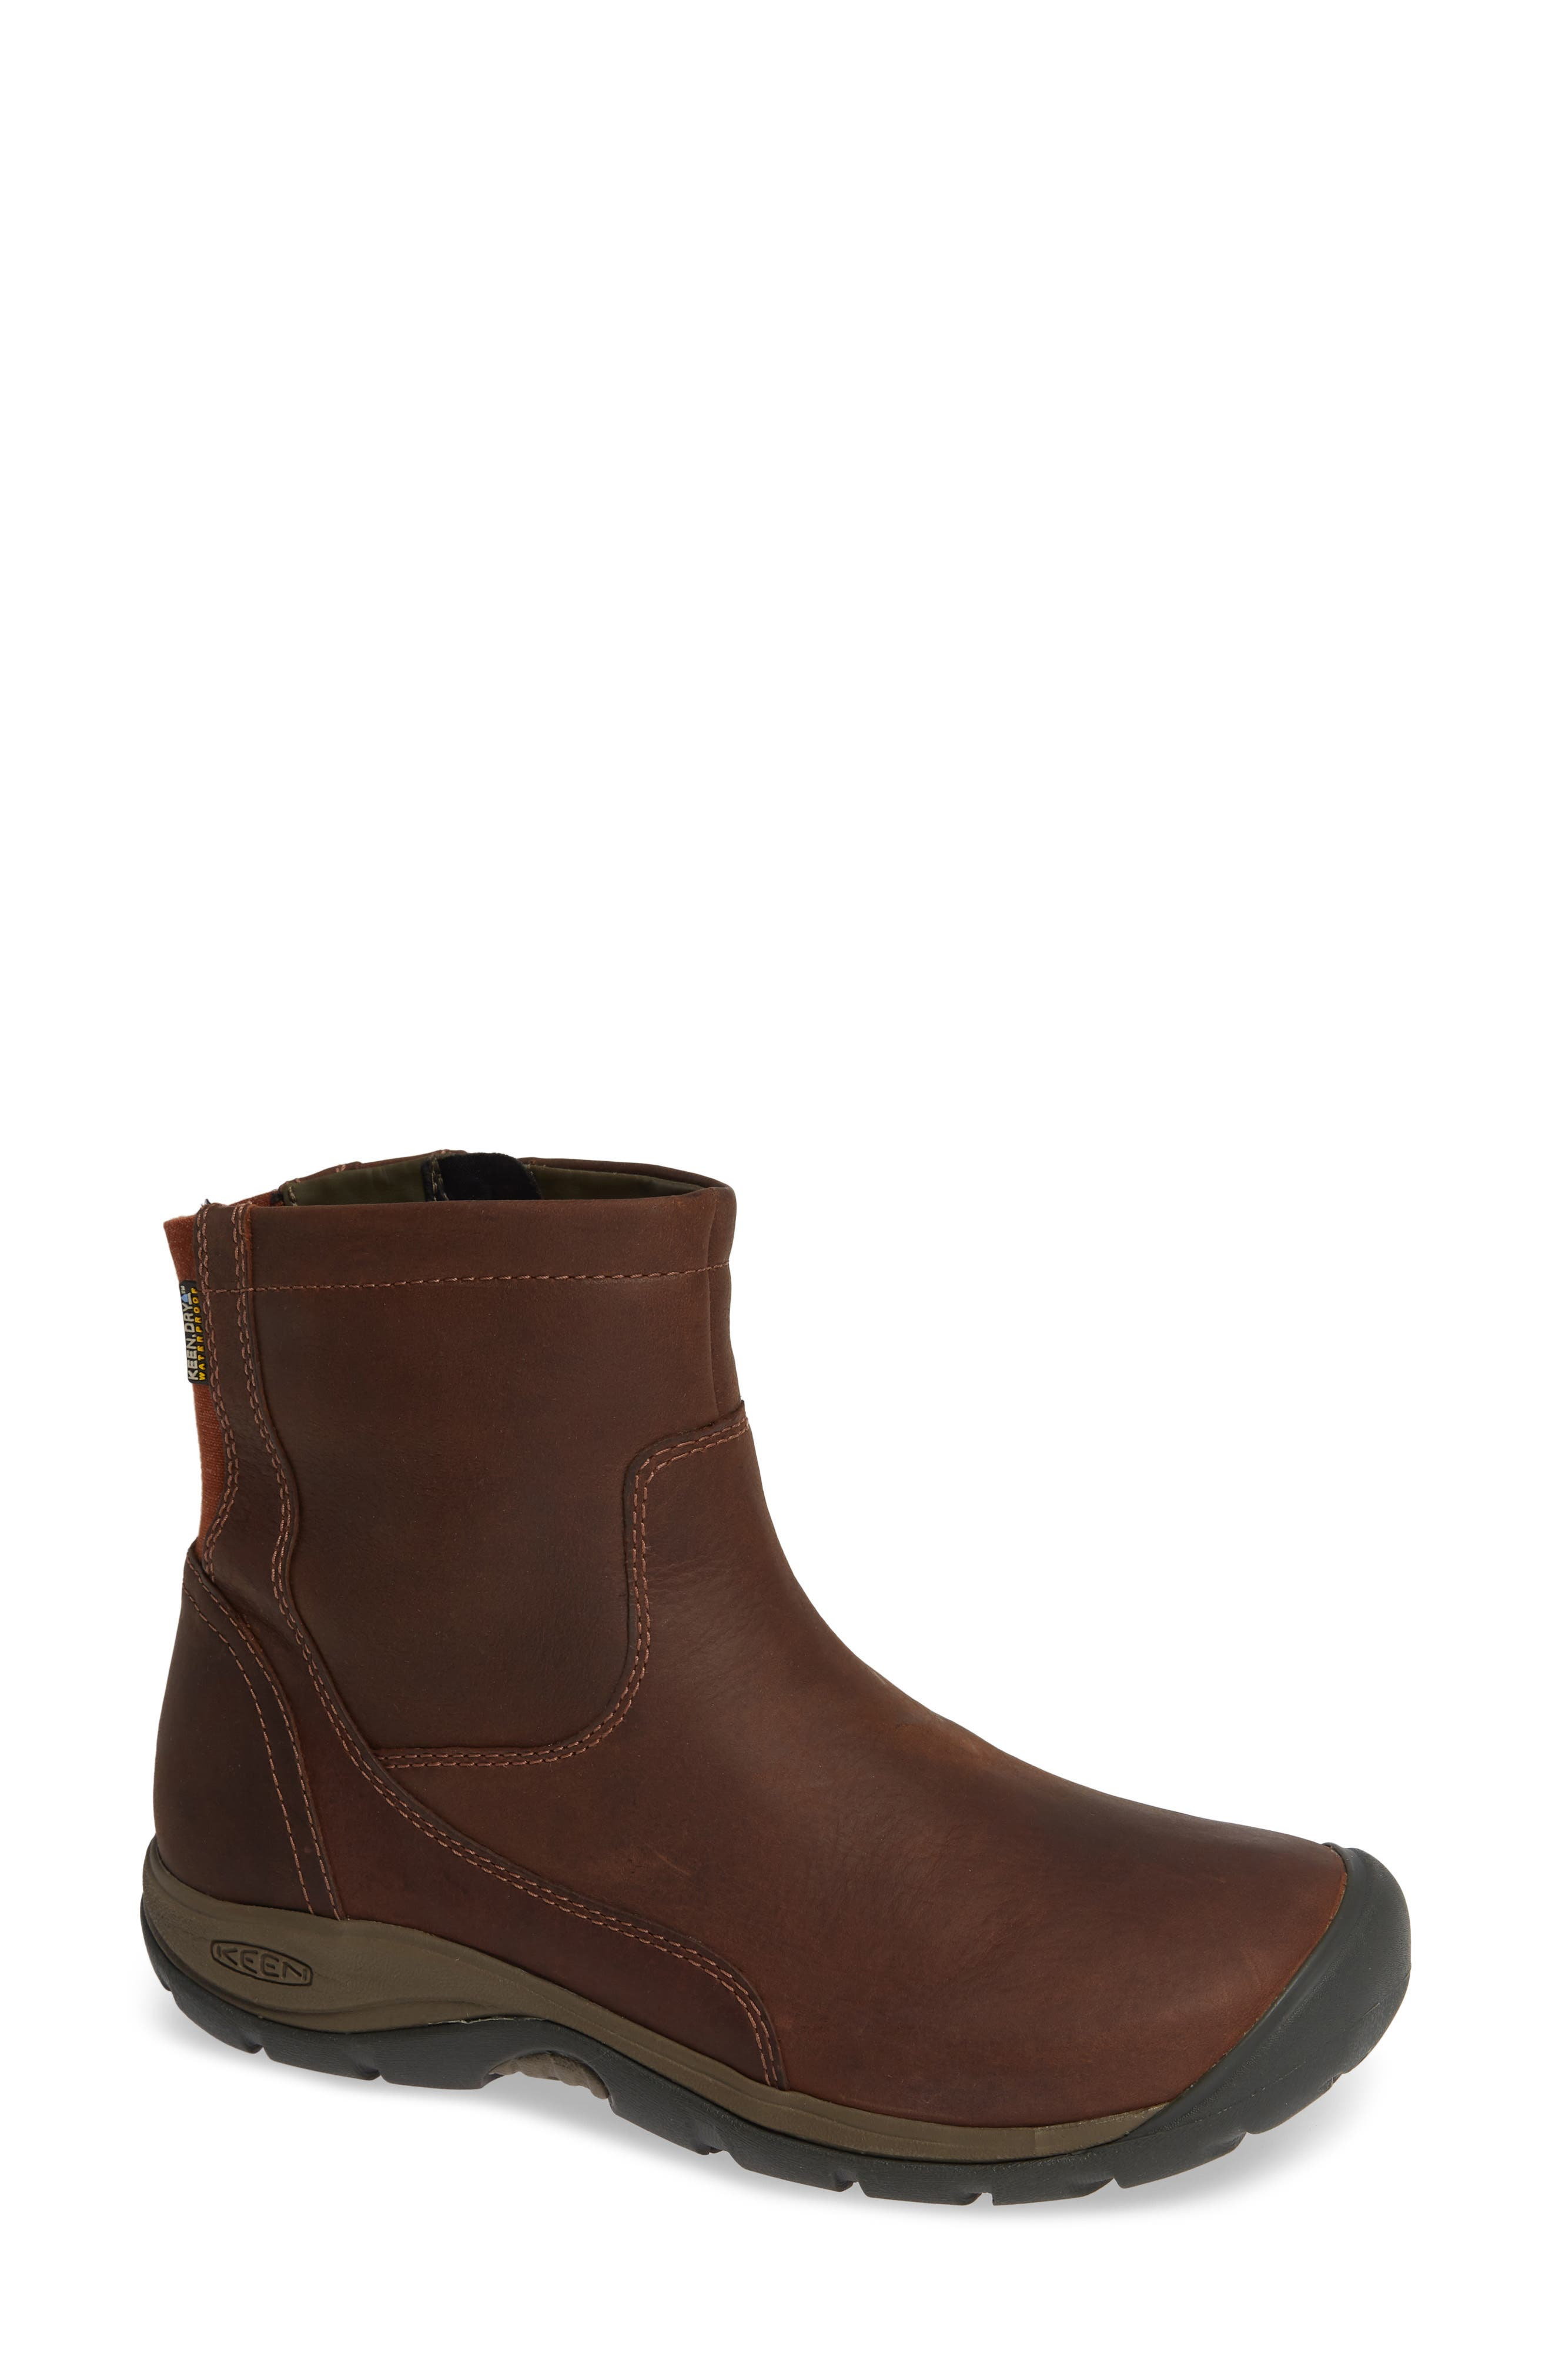 KEEN, Presidio II Waterproof Bootie, Main thumbnail 1, color, TORTOISE SHELL LEATHER